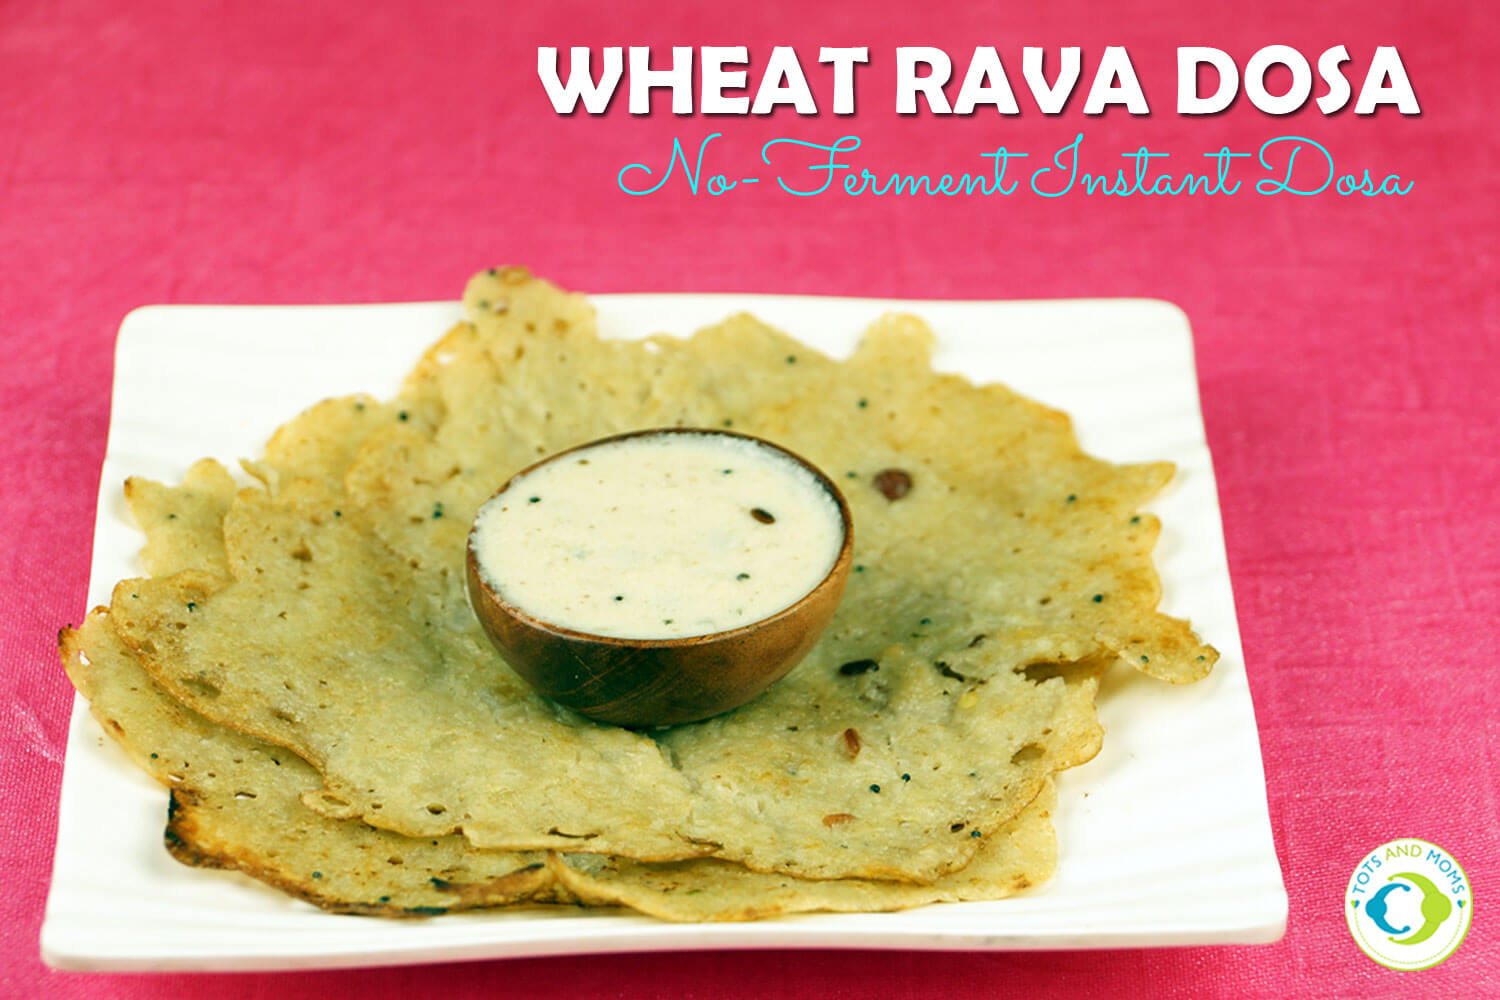 INSTANT WHEAT RAVA DOSA - NO FERMENT INSTANT DOSA for Babies, Toddlers, Kids & Family Instant Wheat rava dosa for toddlers